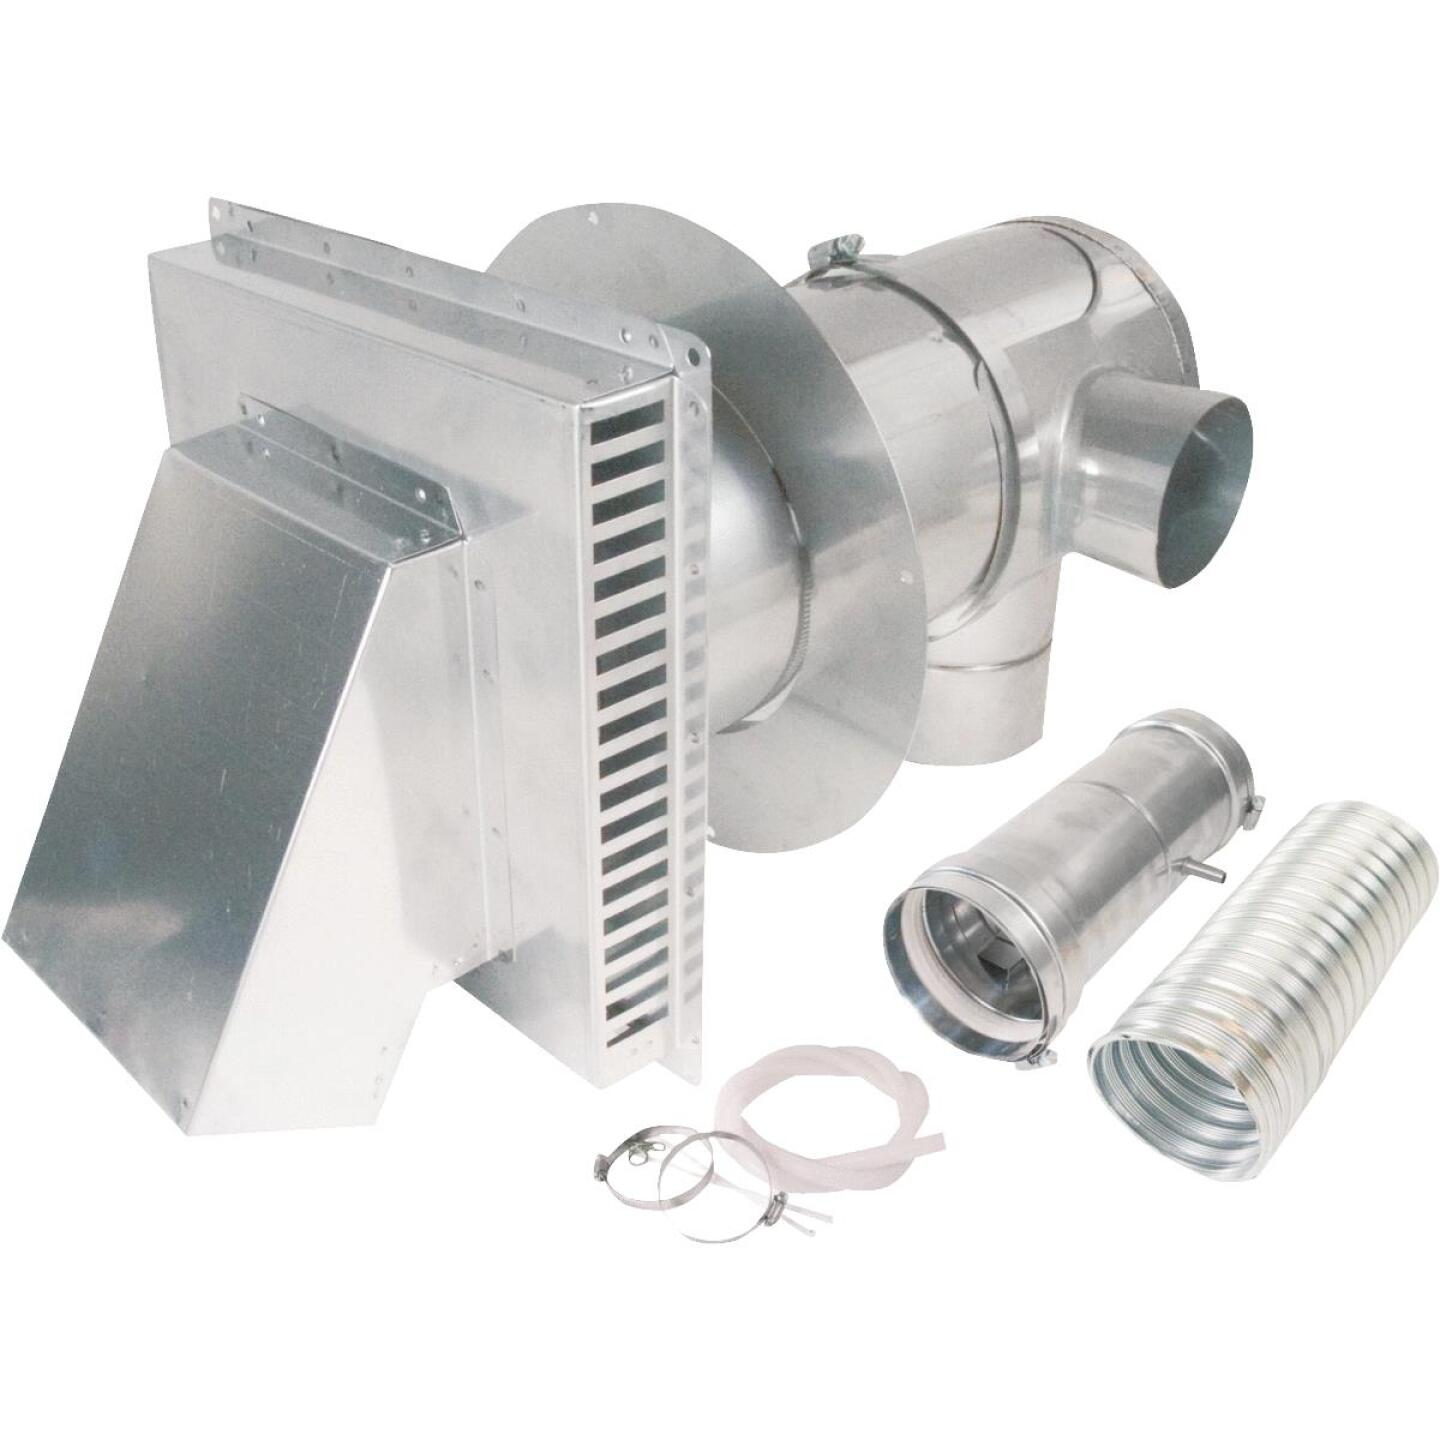 Reliance Tankless Water Heater Stainless Steel Vent Kit Image 1